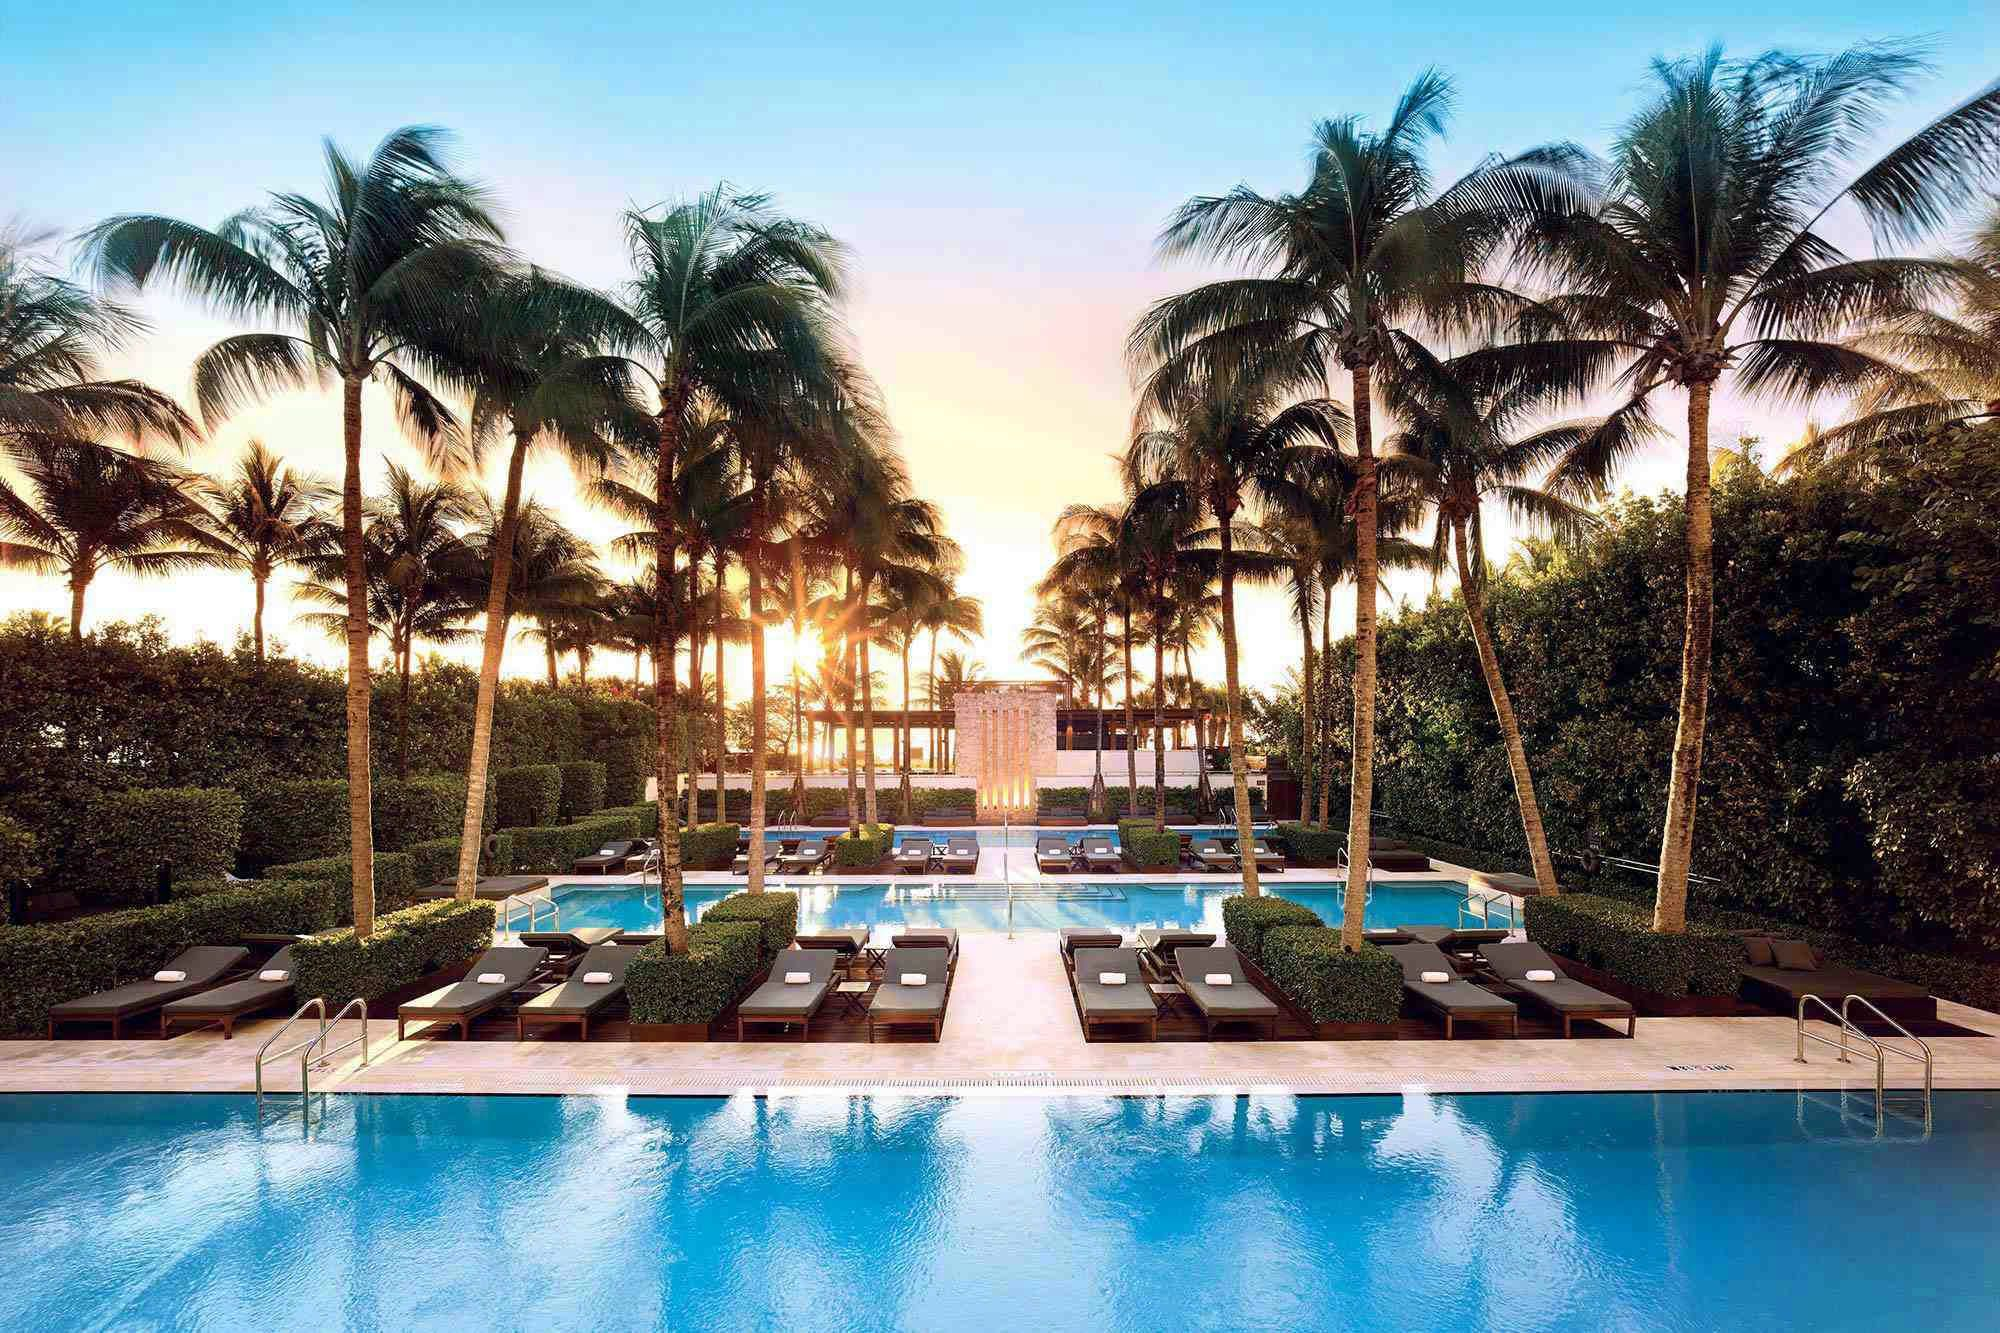 Most Luxury Hotels In Miami For Valentine S Day